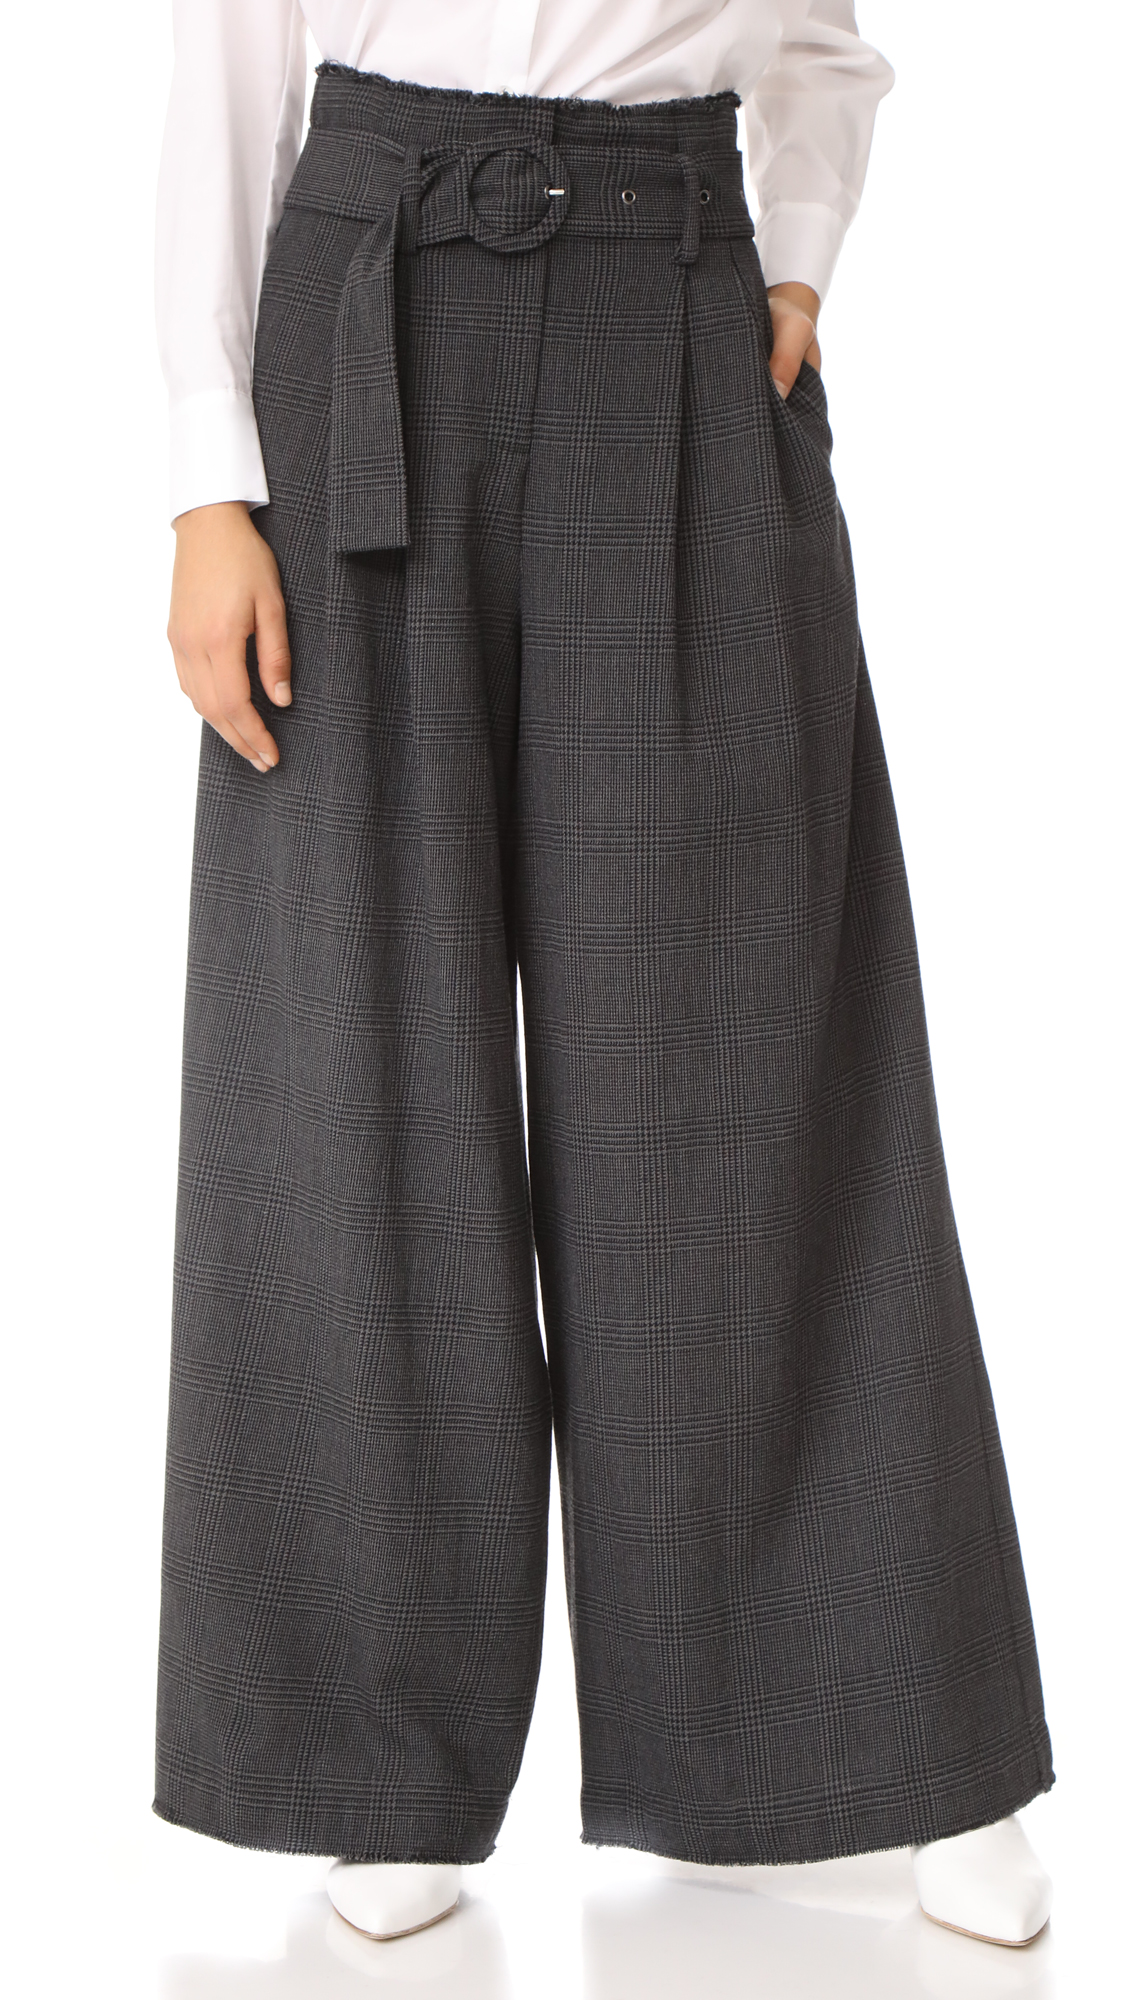 Sea High Waist Slouchy Pants - Dark Grey